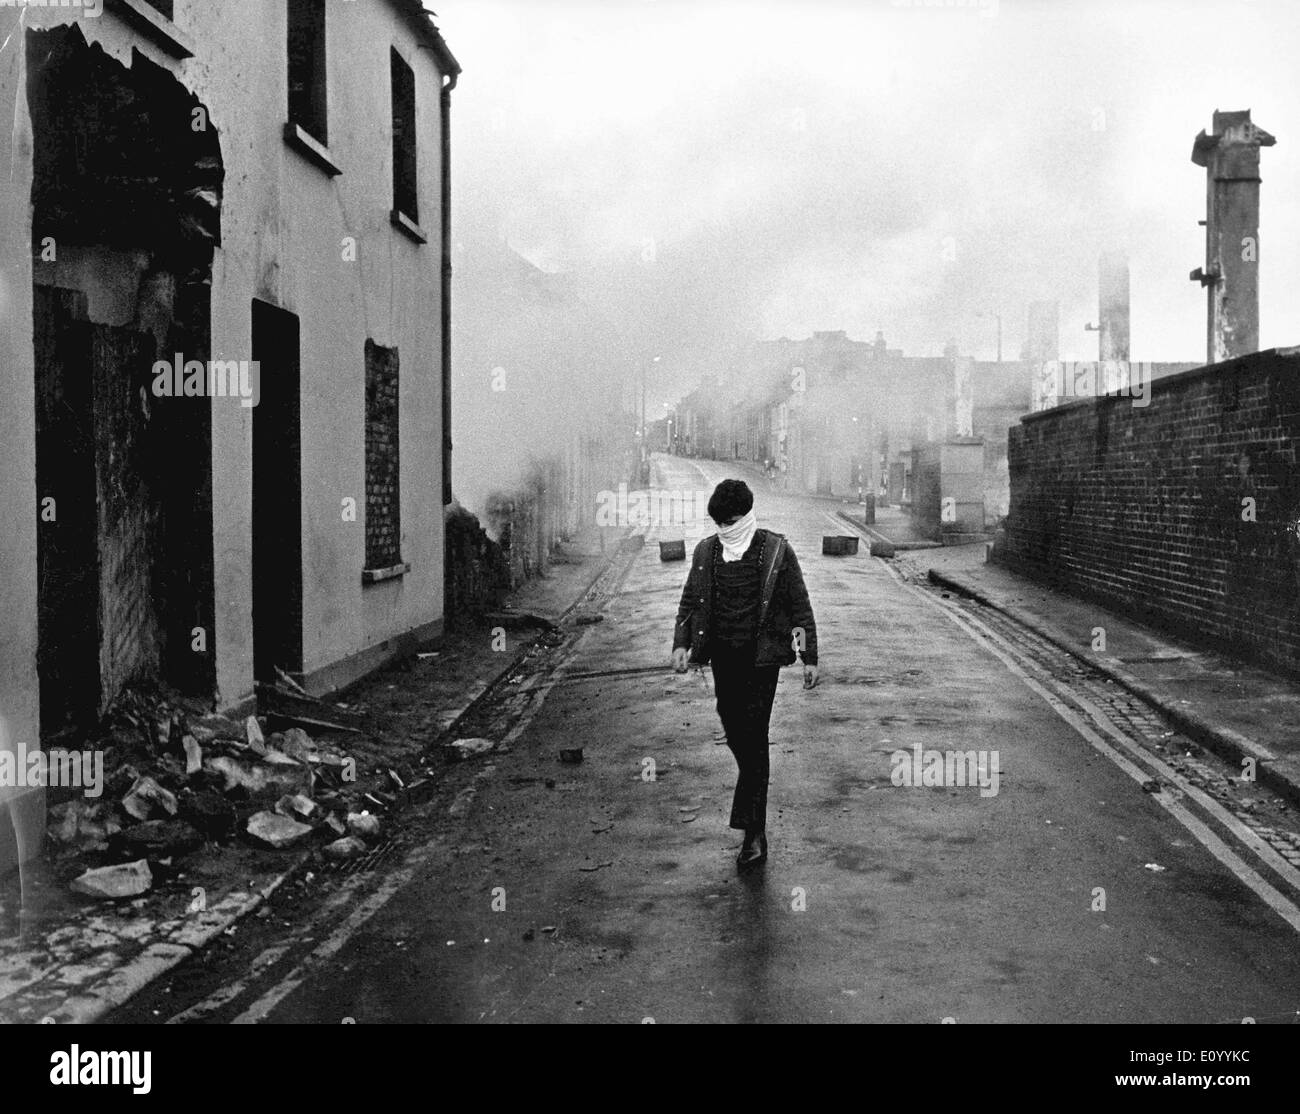 Aftermath of riots in Belfast - Stock Image